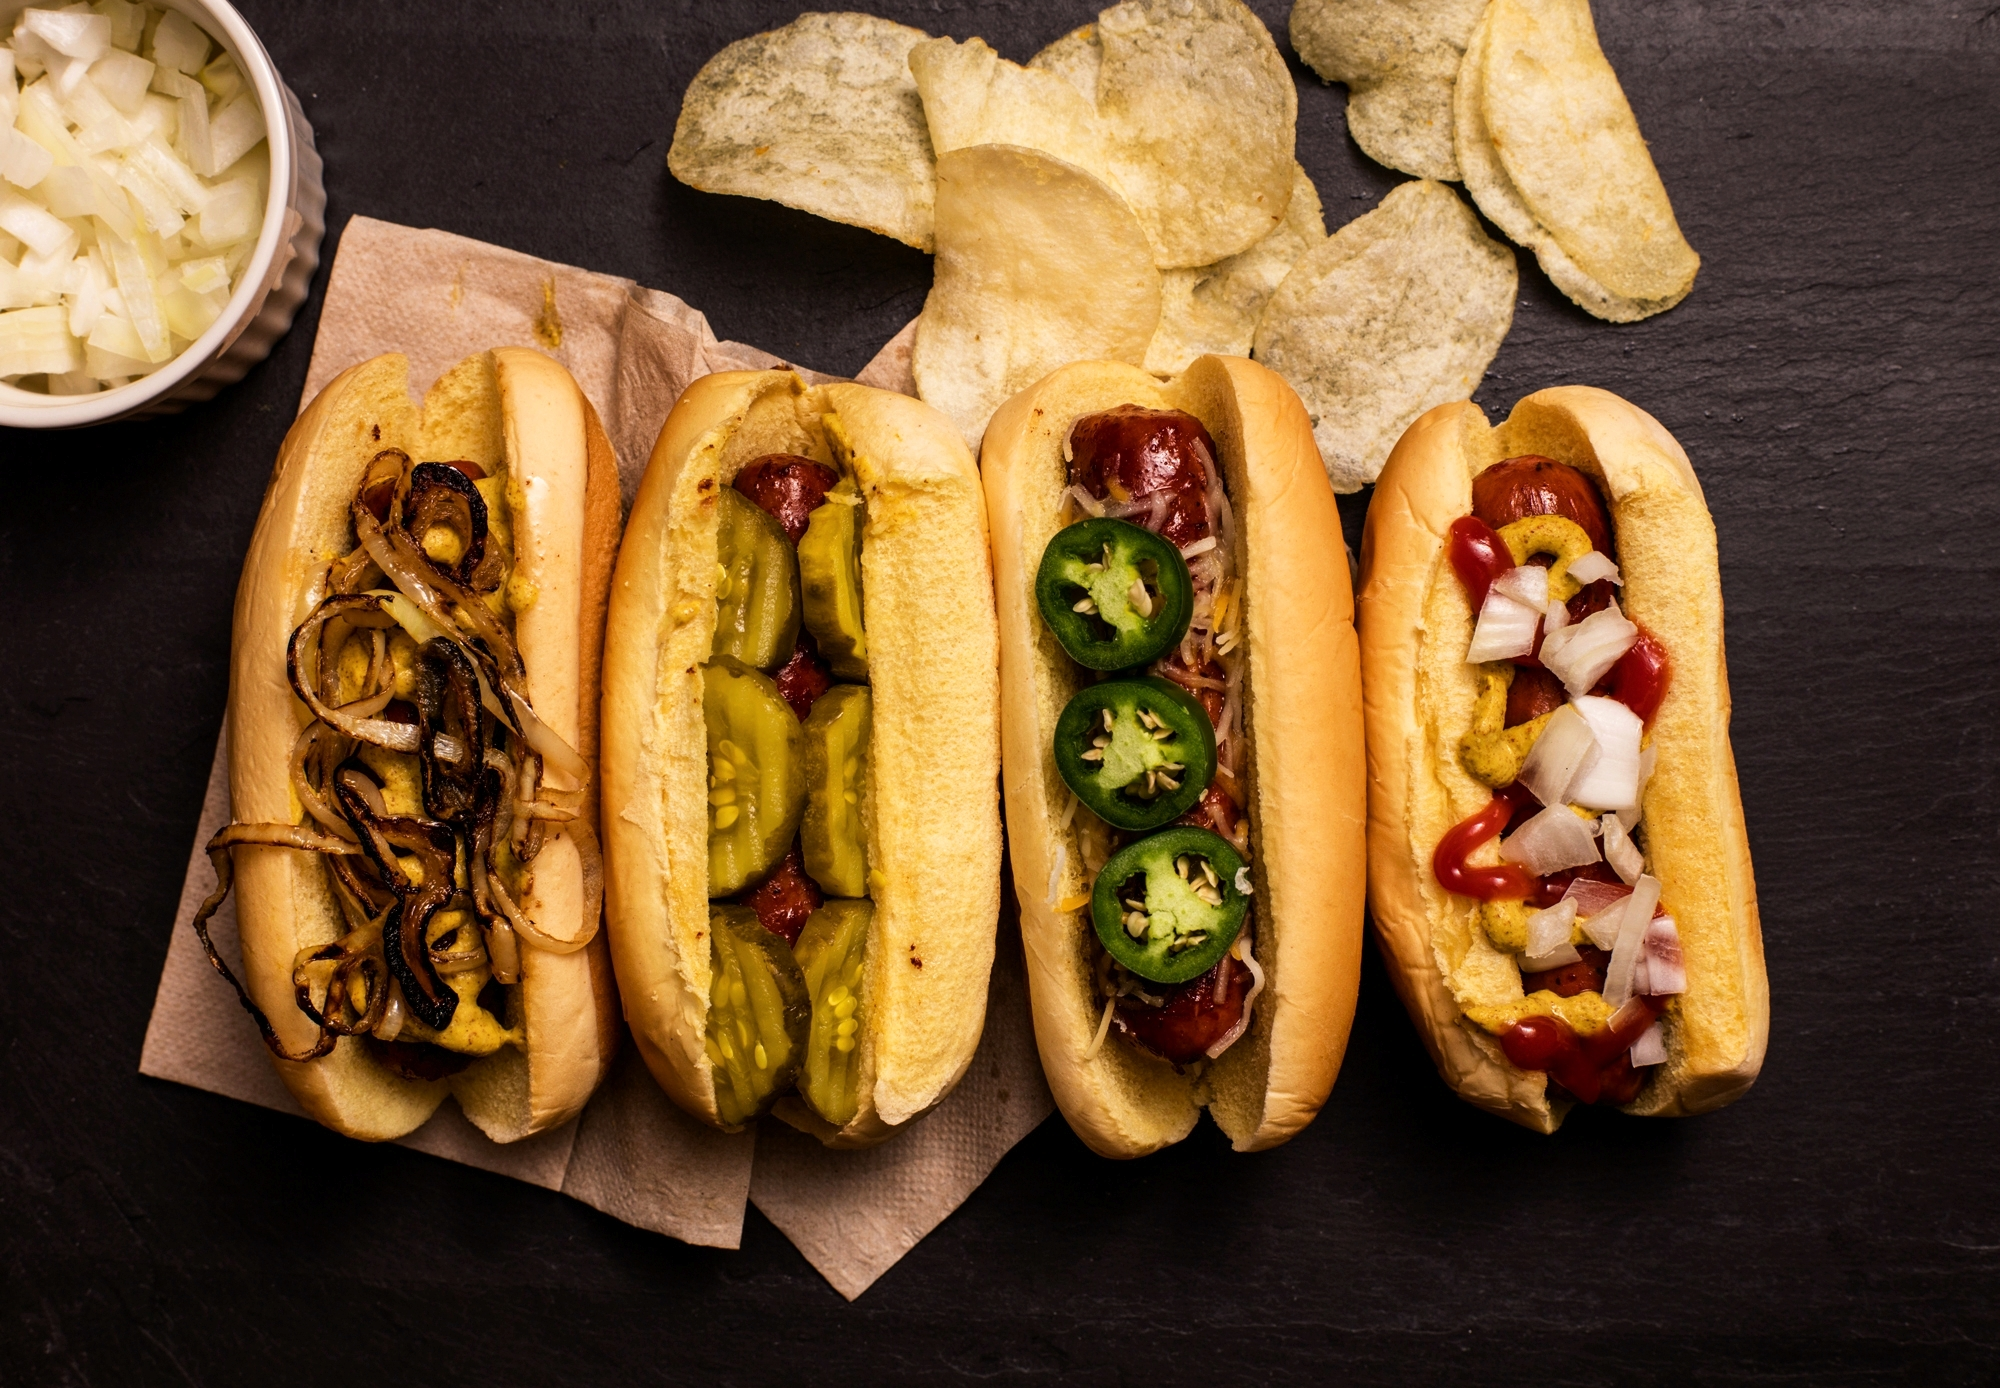 Four-Hot-Dogs,-Top-Down-521211070_8180x5675.jpg